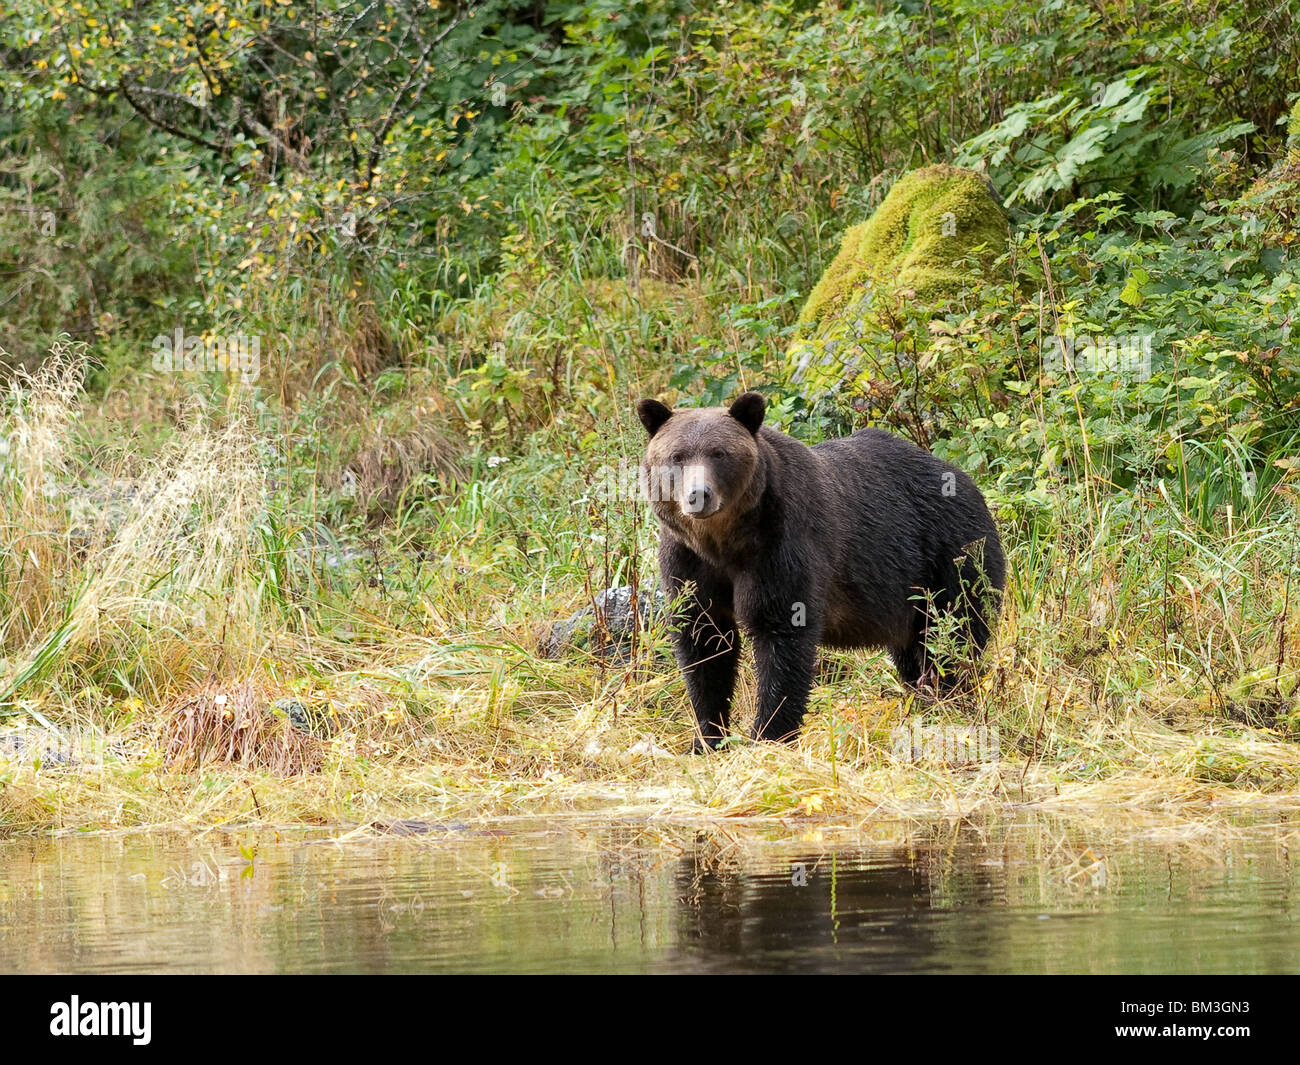 Grizzly bear, Ursus arctos horribilis, standing on the riverside - Stock Image